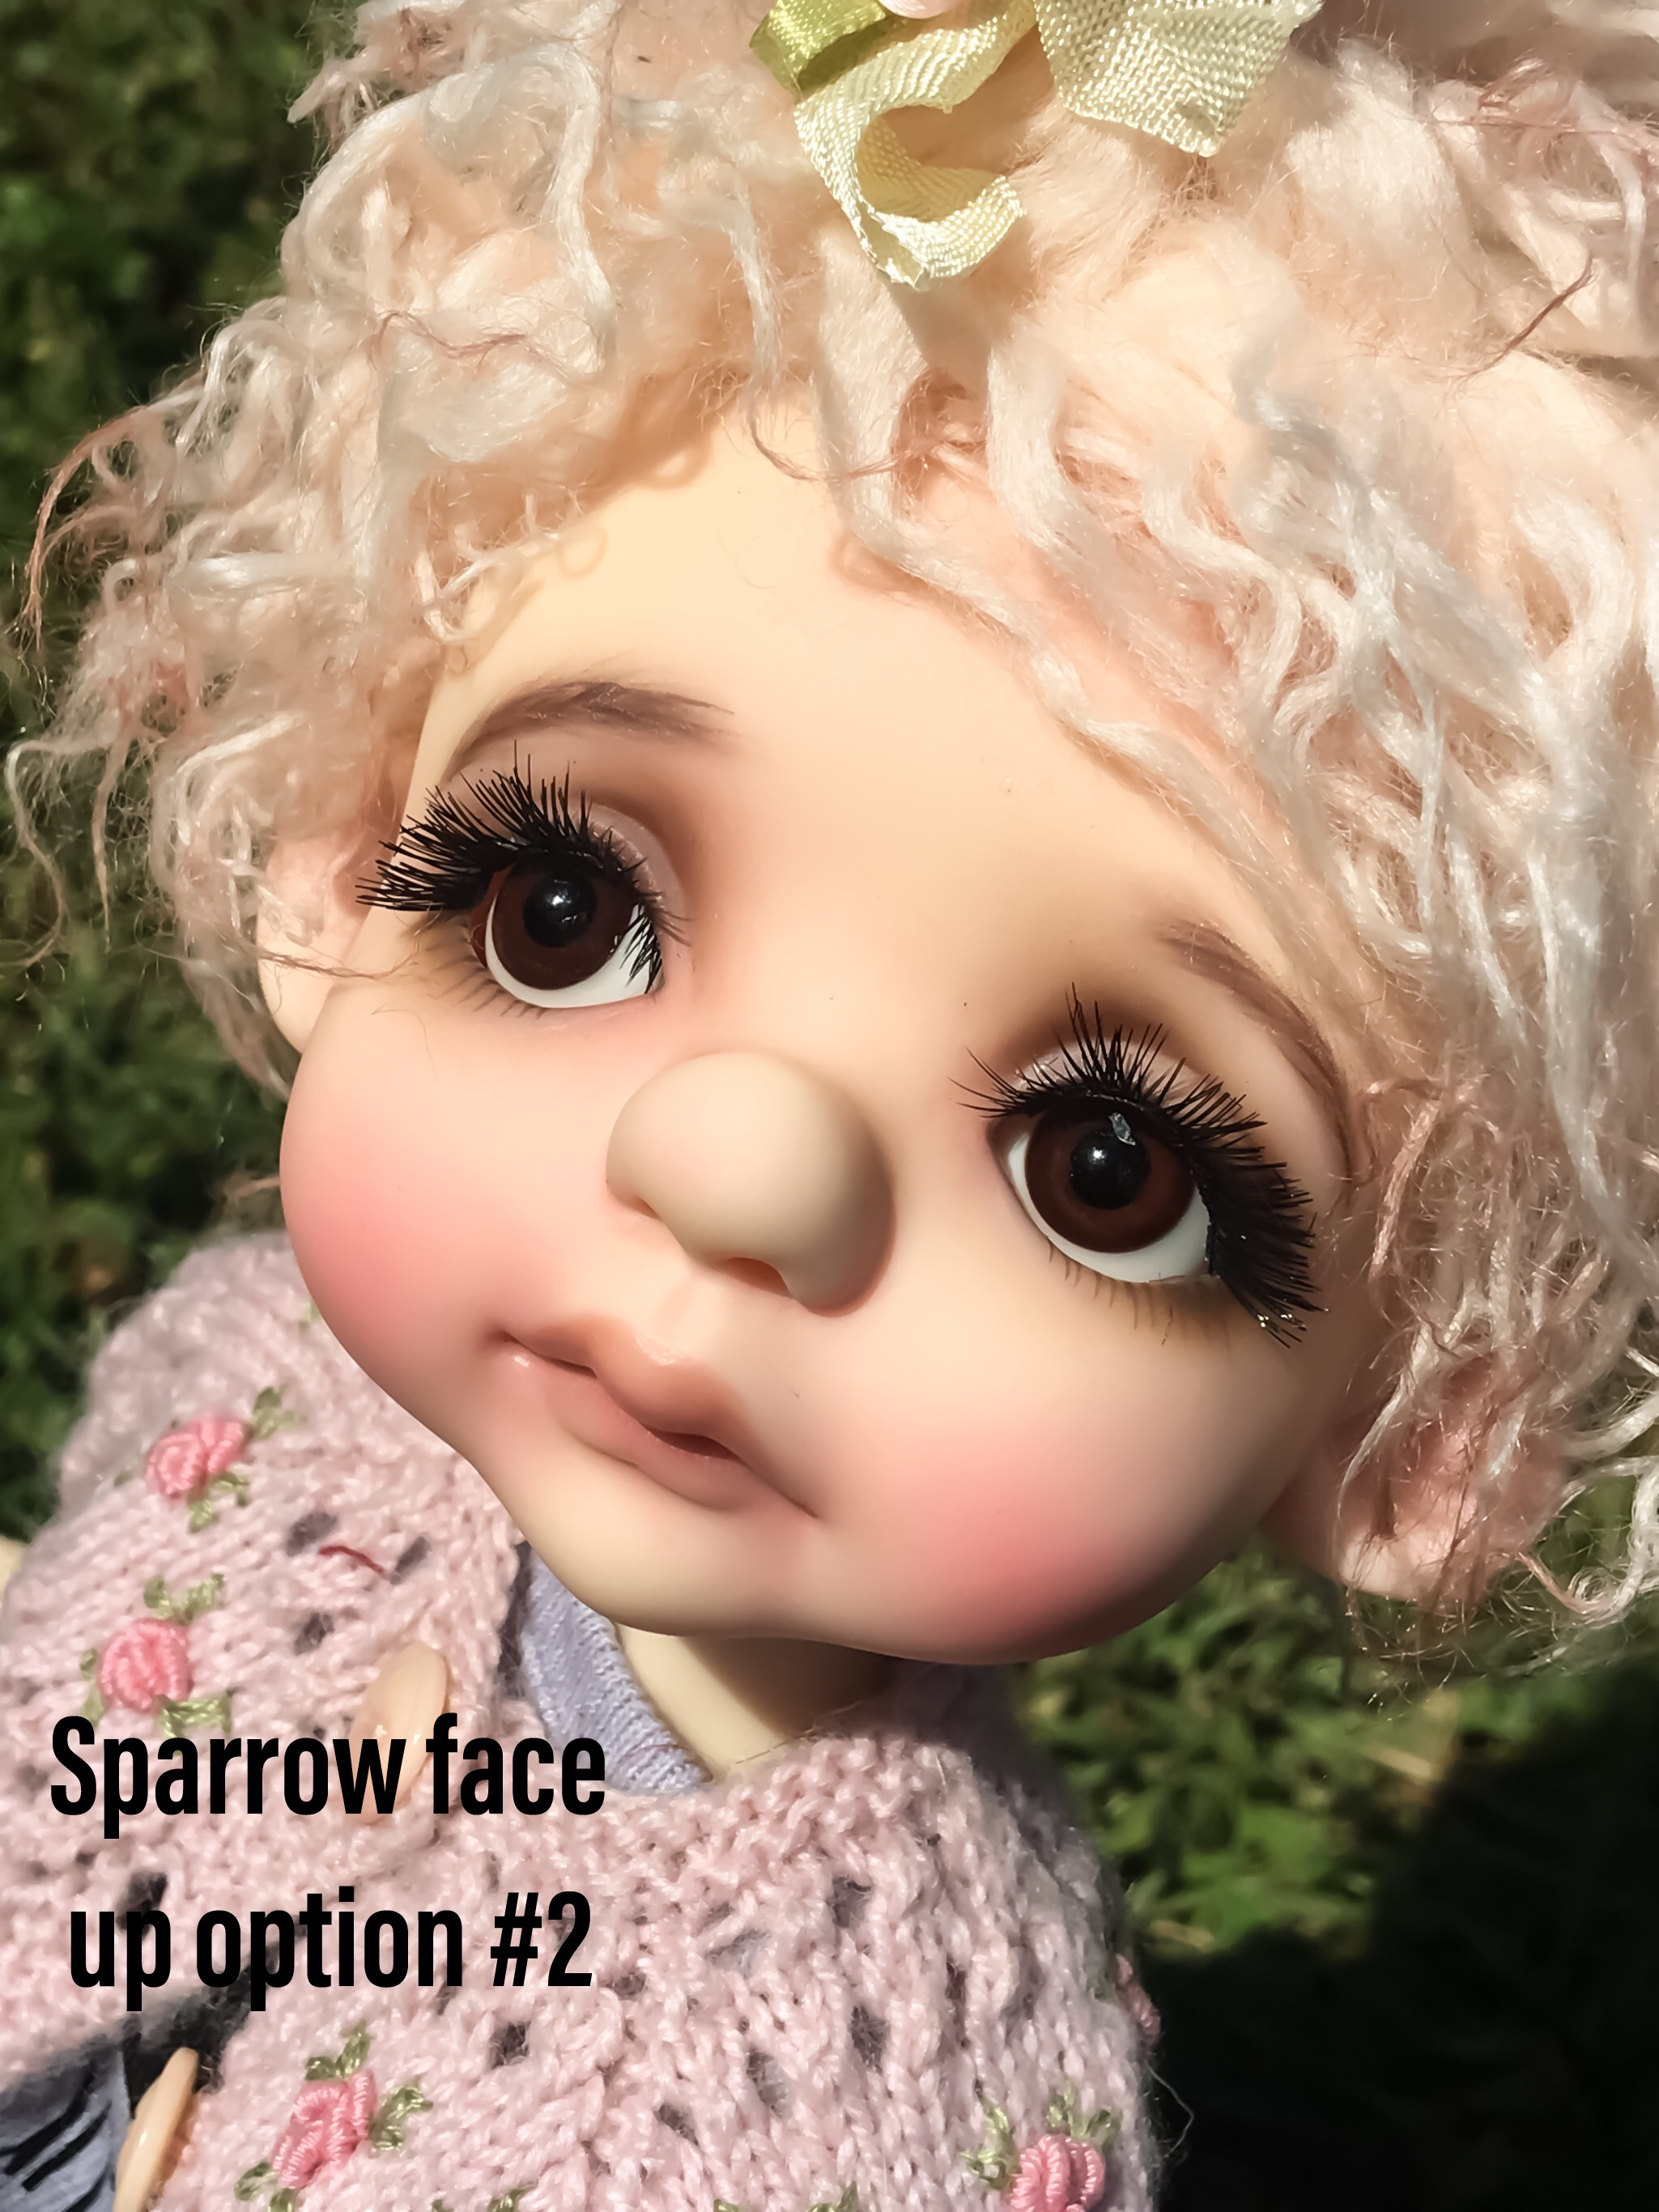 Sparrow by Tracy Promber - Faceup Option #2